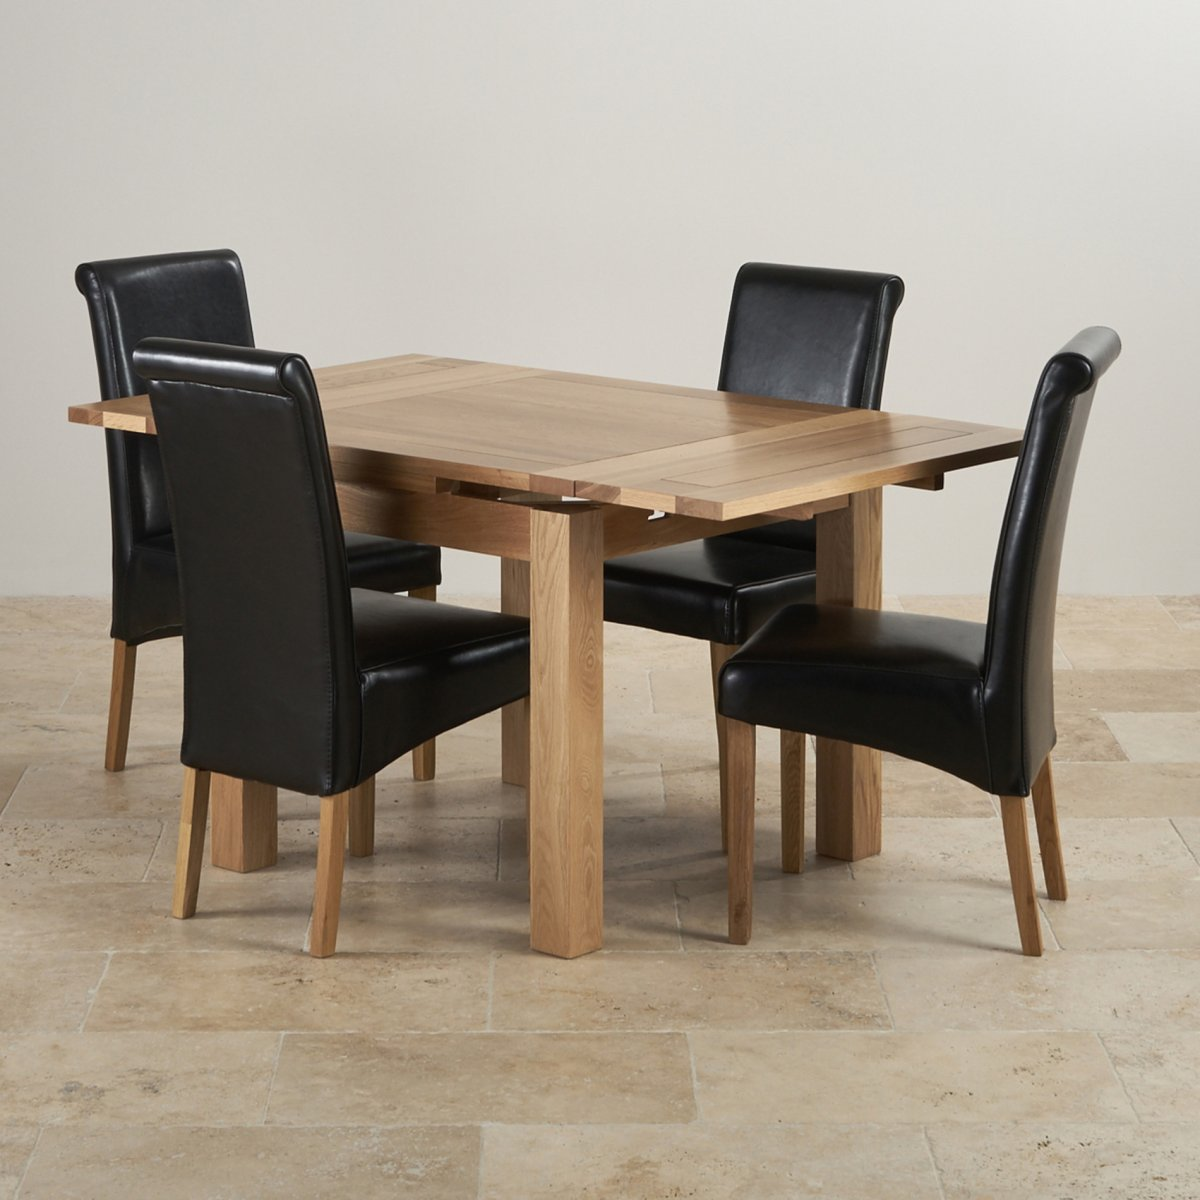 Dorset Dining Set In Oak Extending Dining Table 4 Leather Chairs